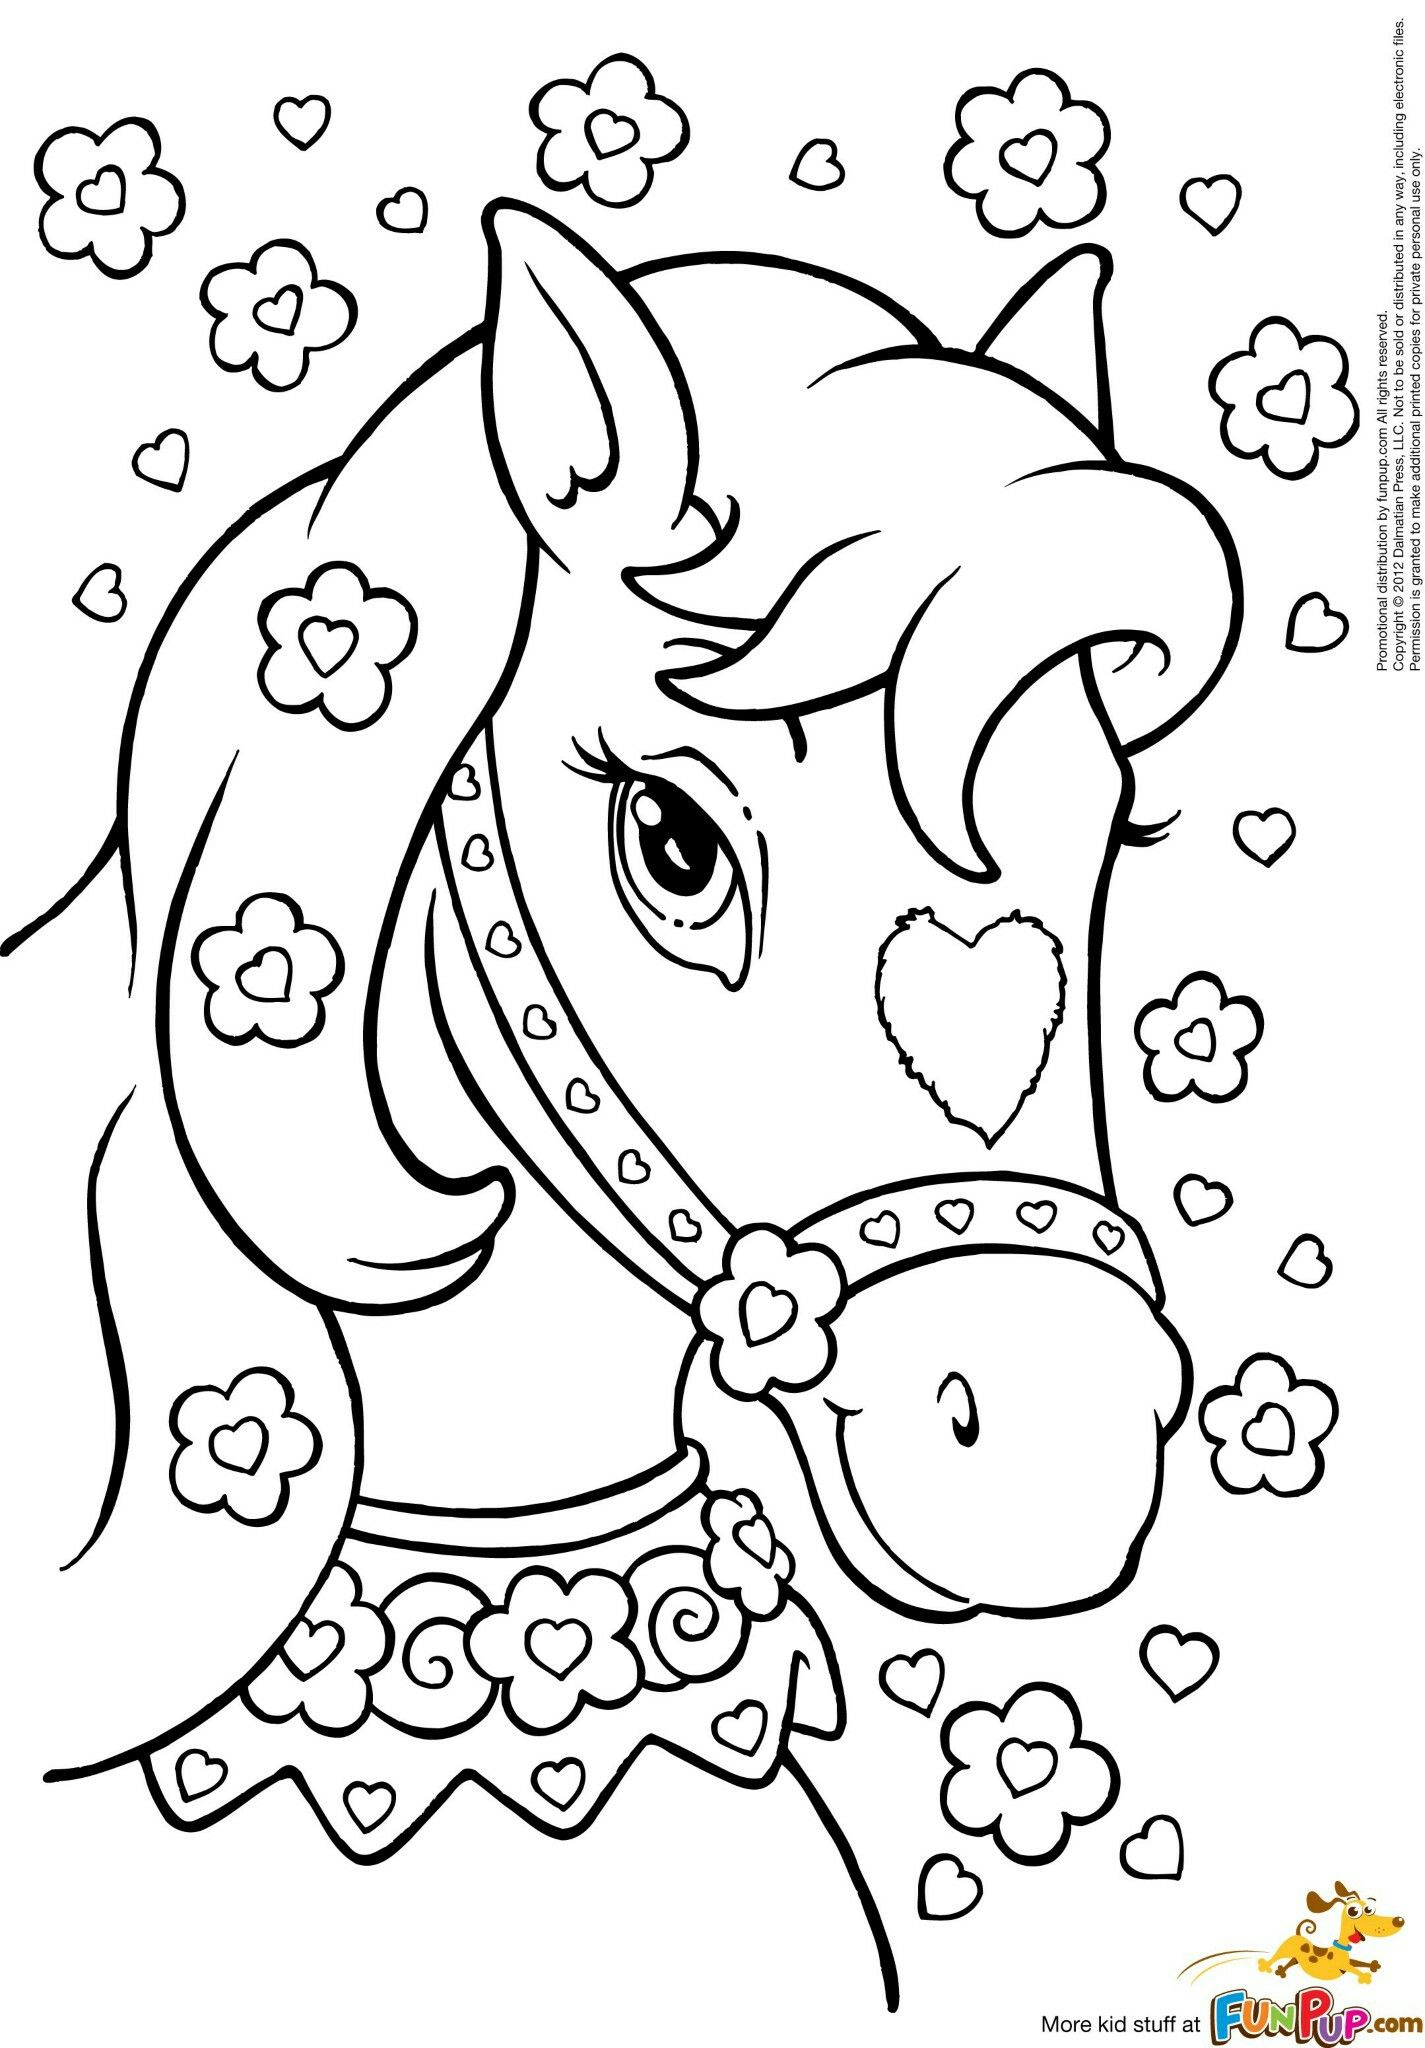 Pin by Elsa Ludick Smit on kids   Unicorn coloring pages ...